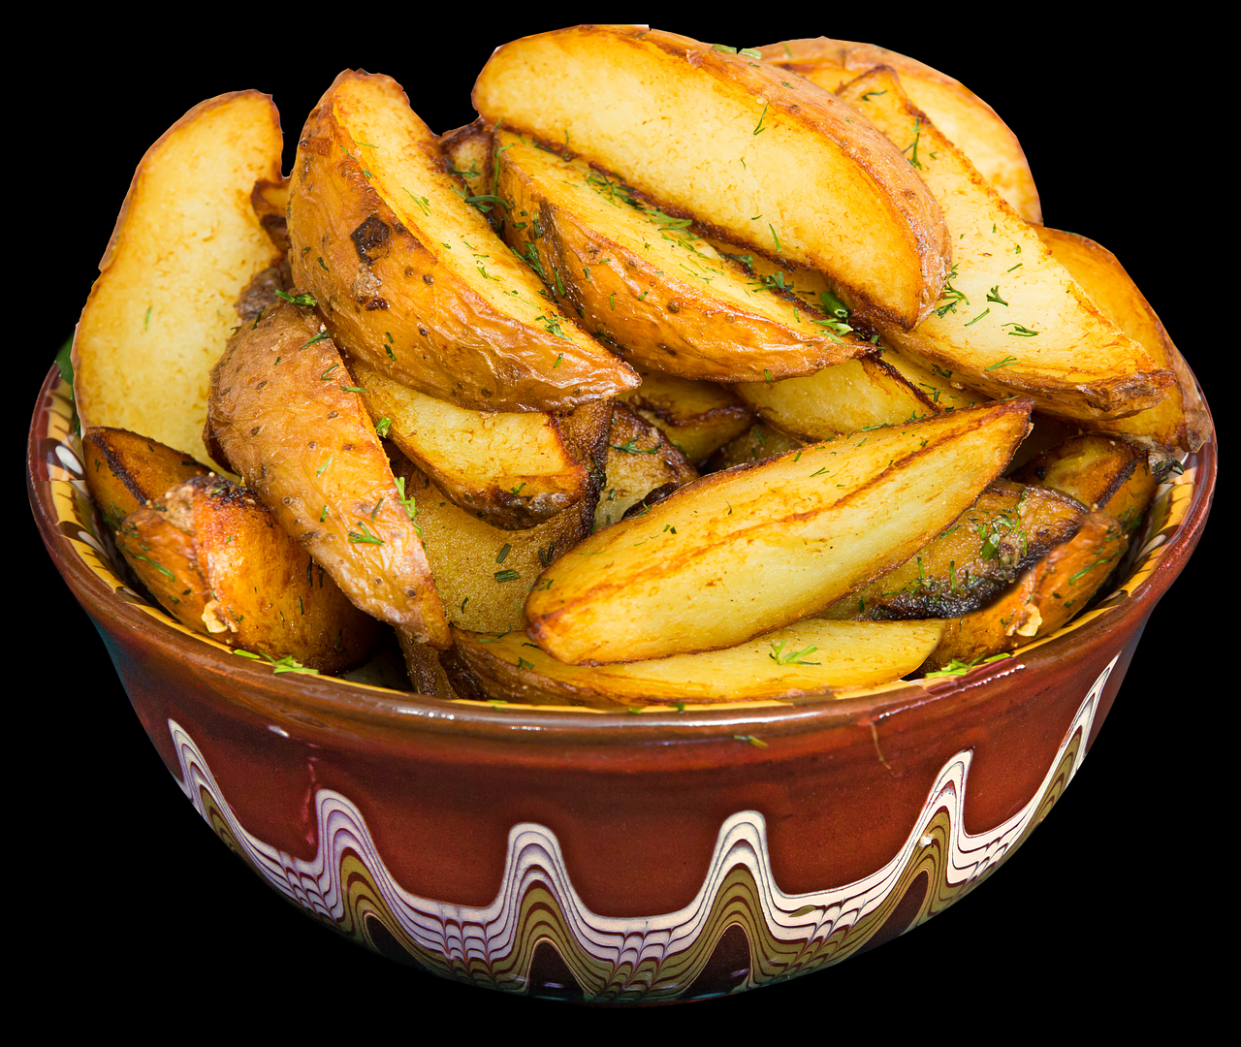 Fried Food, Potatoes, Vegetables, Food - recipes vegetable side dishes healthy